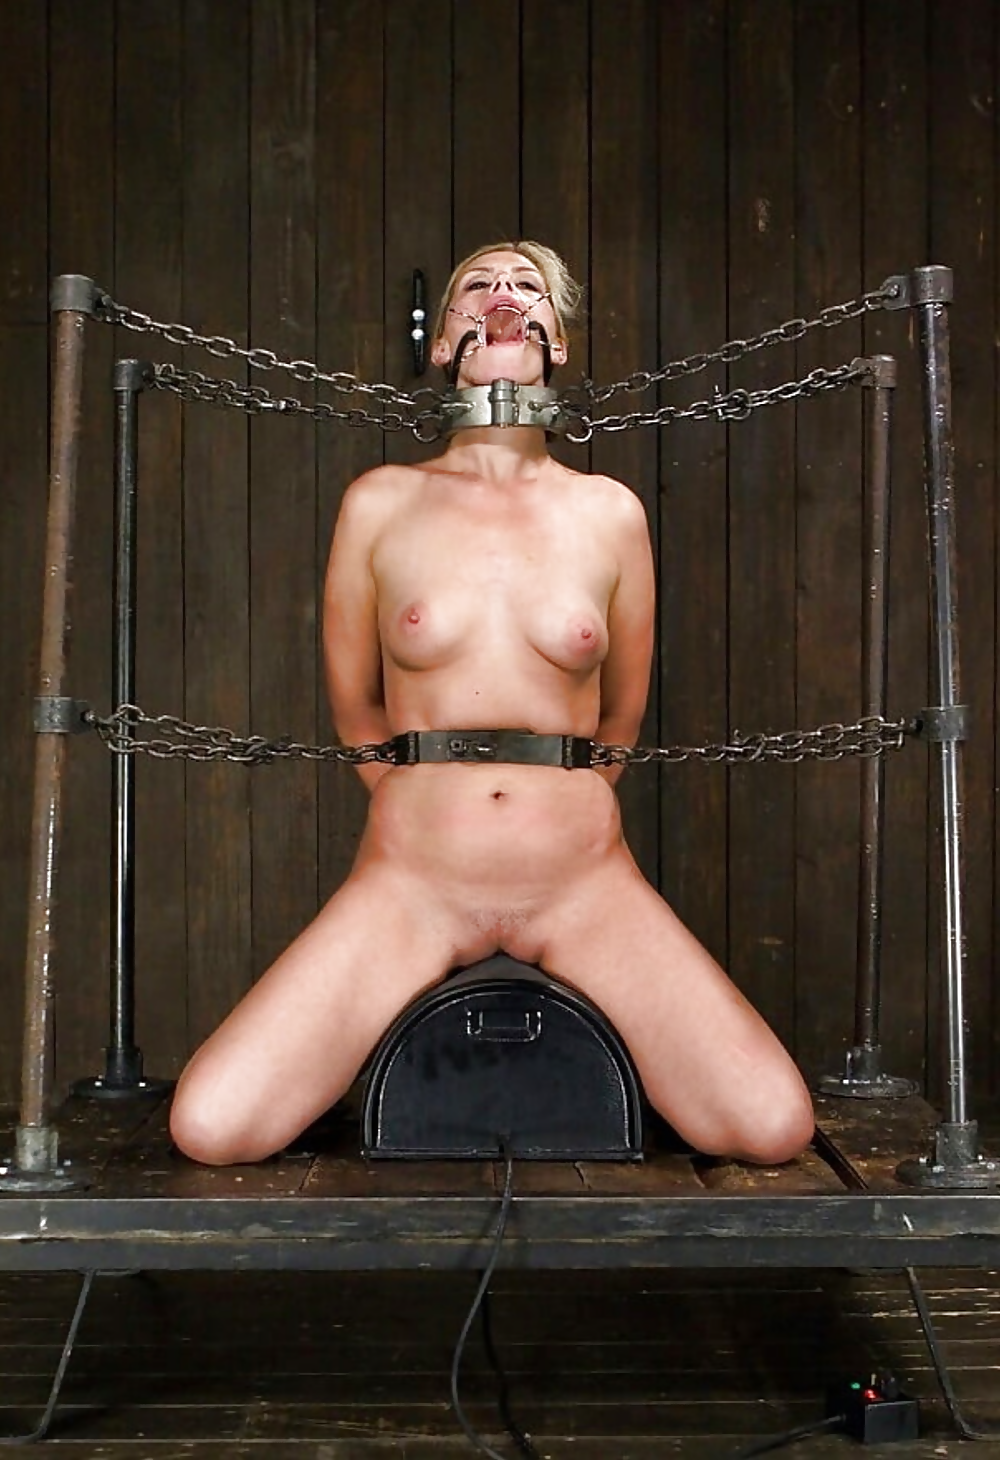 Whips, chains and bondage during bdsm play